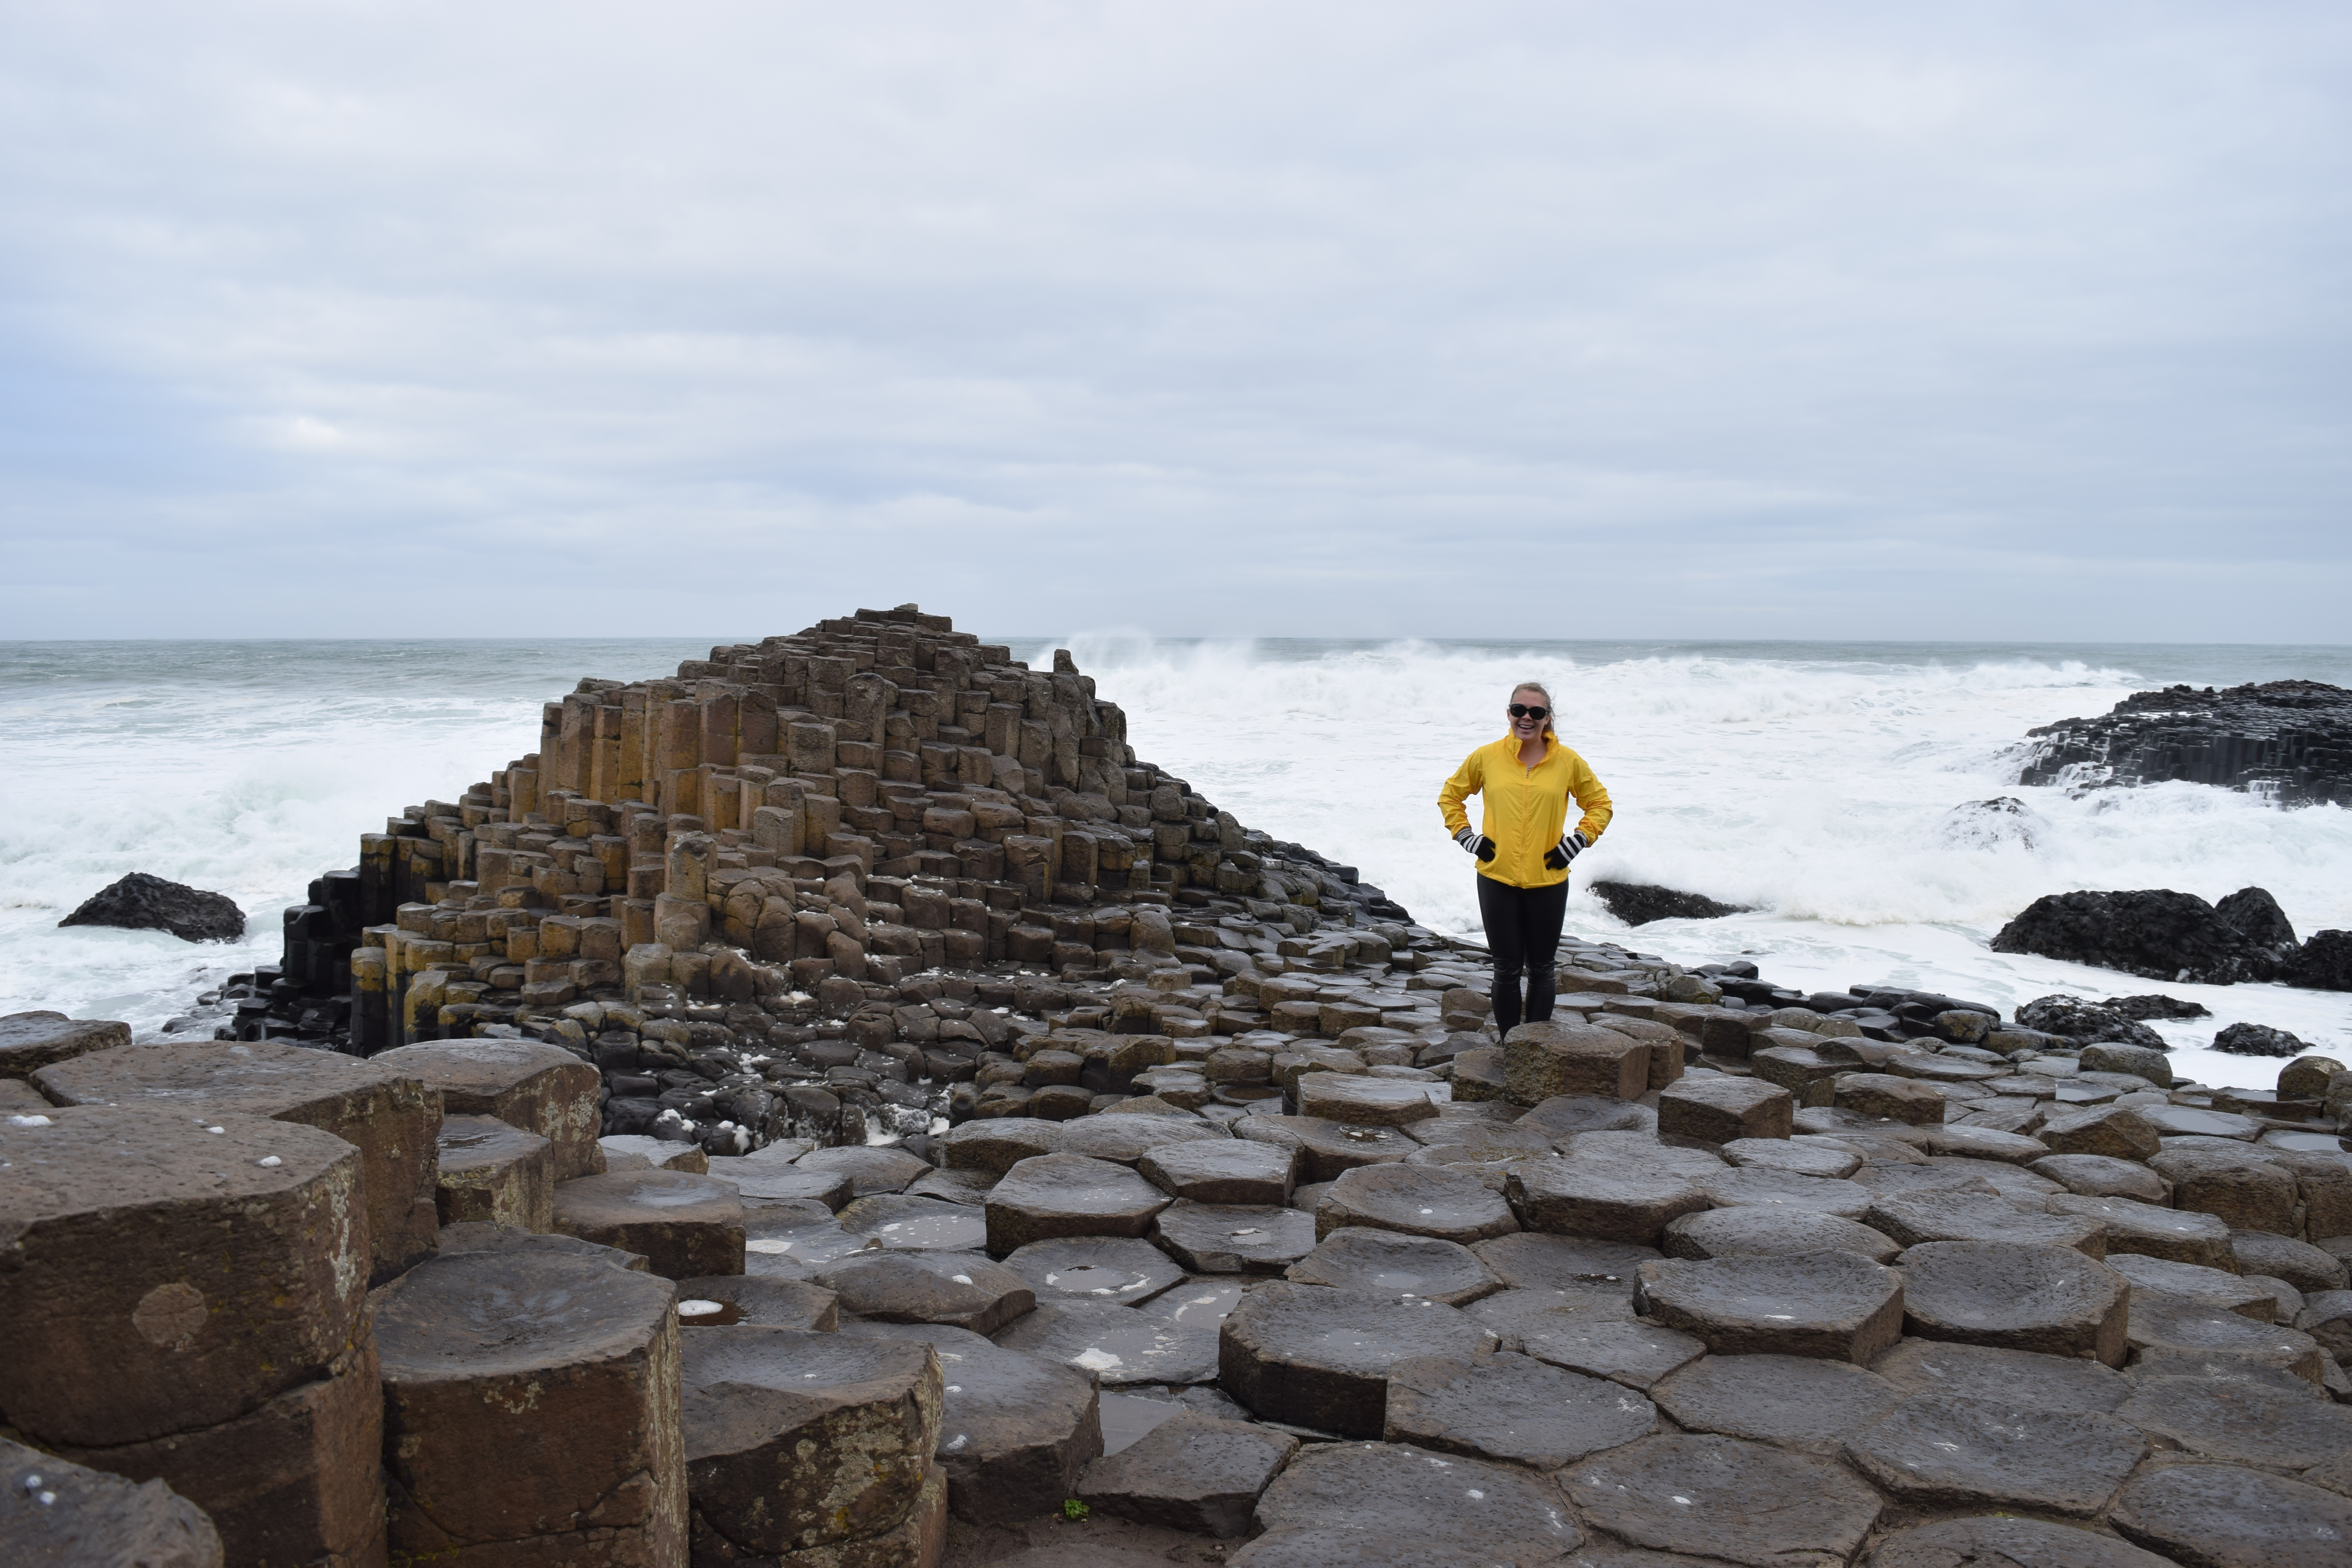 Woman in yellow jacket standing on the Giant's Causeway basalt columns in Northern Ireland